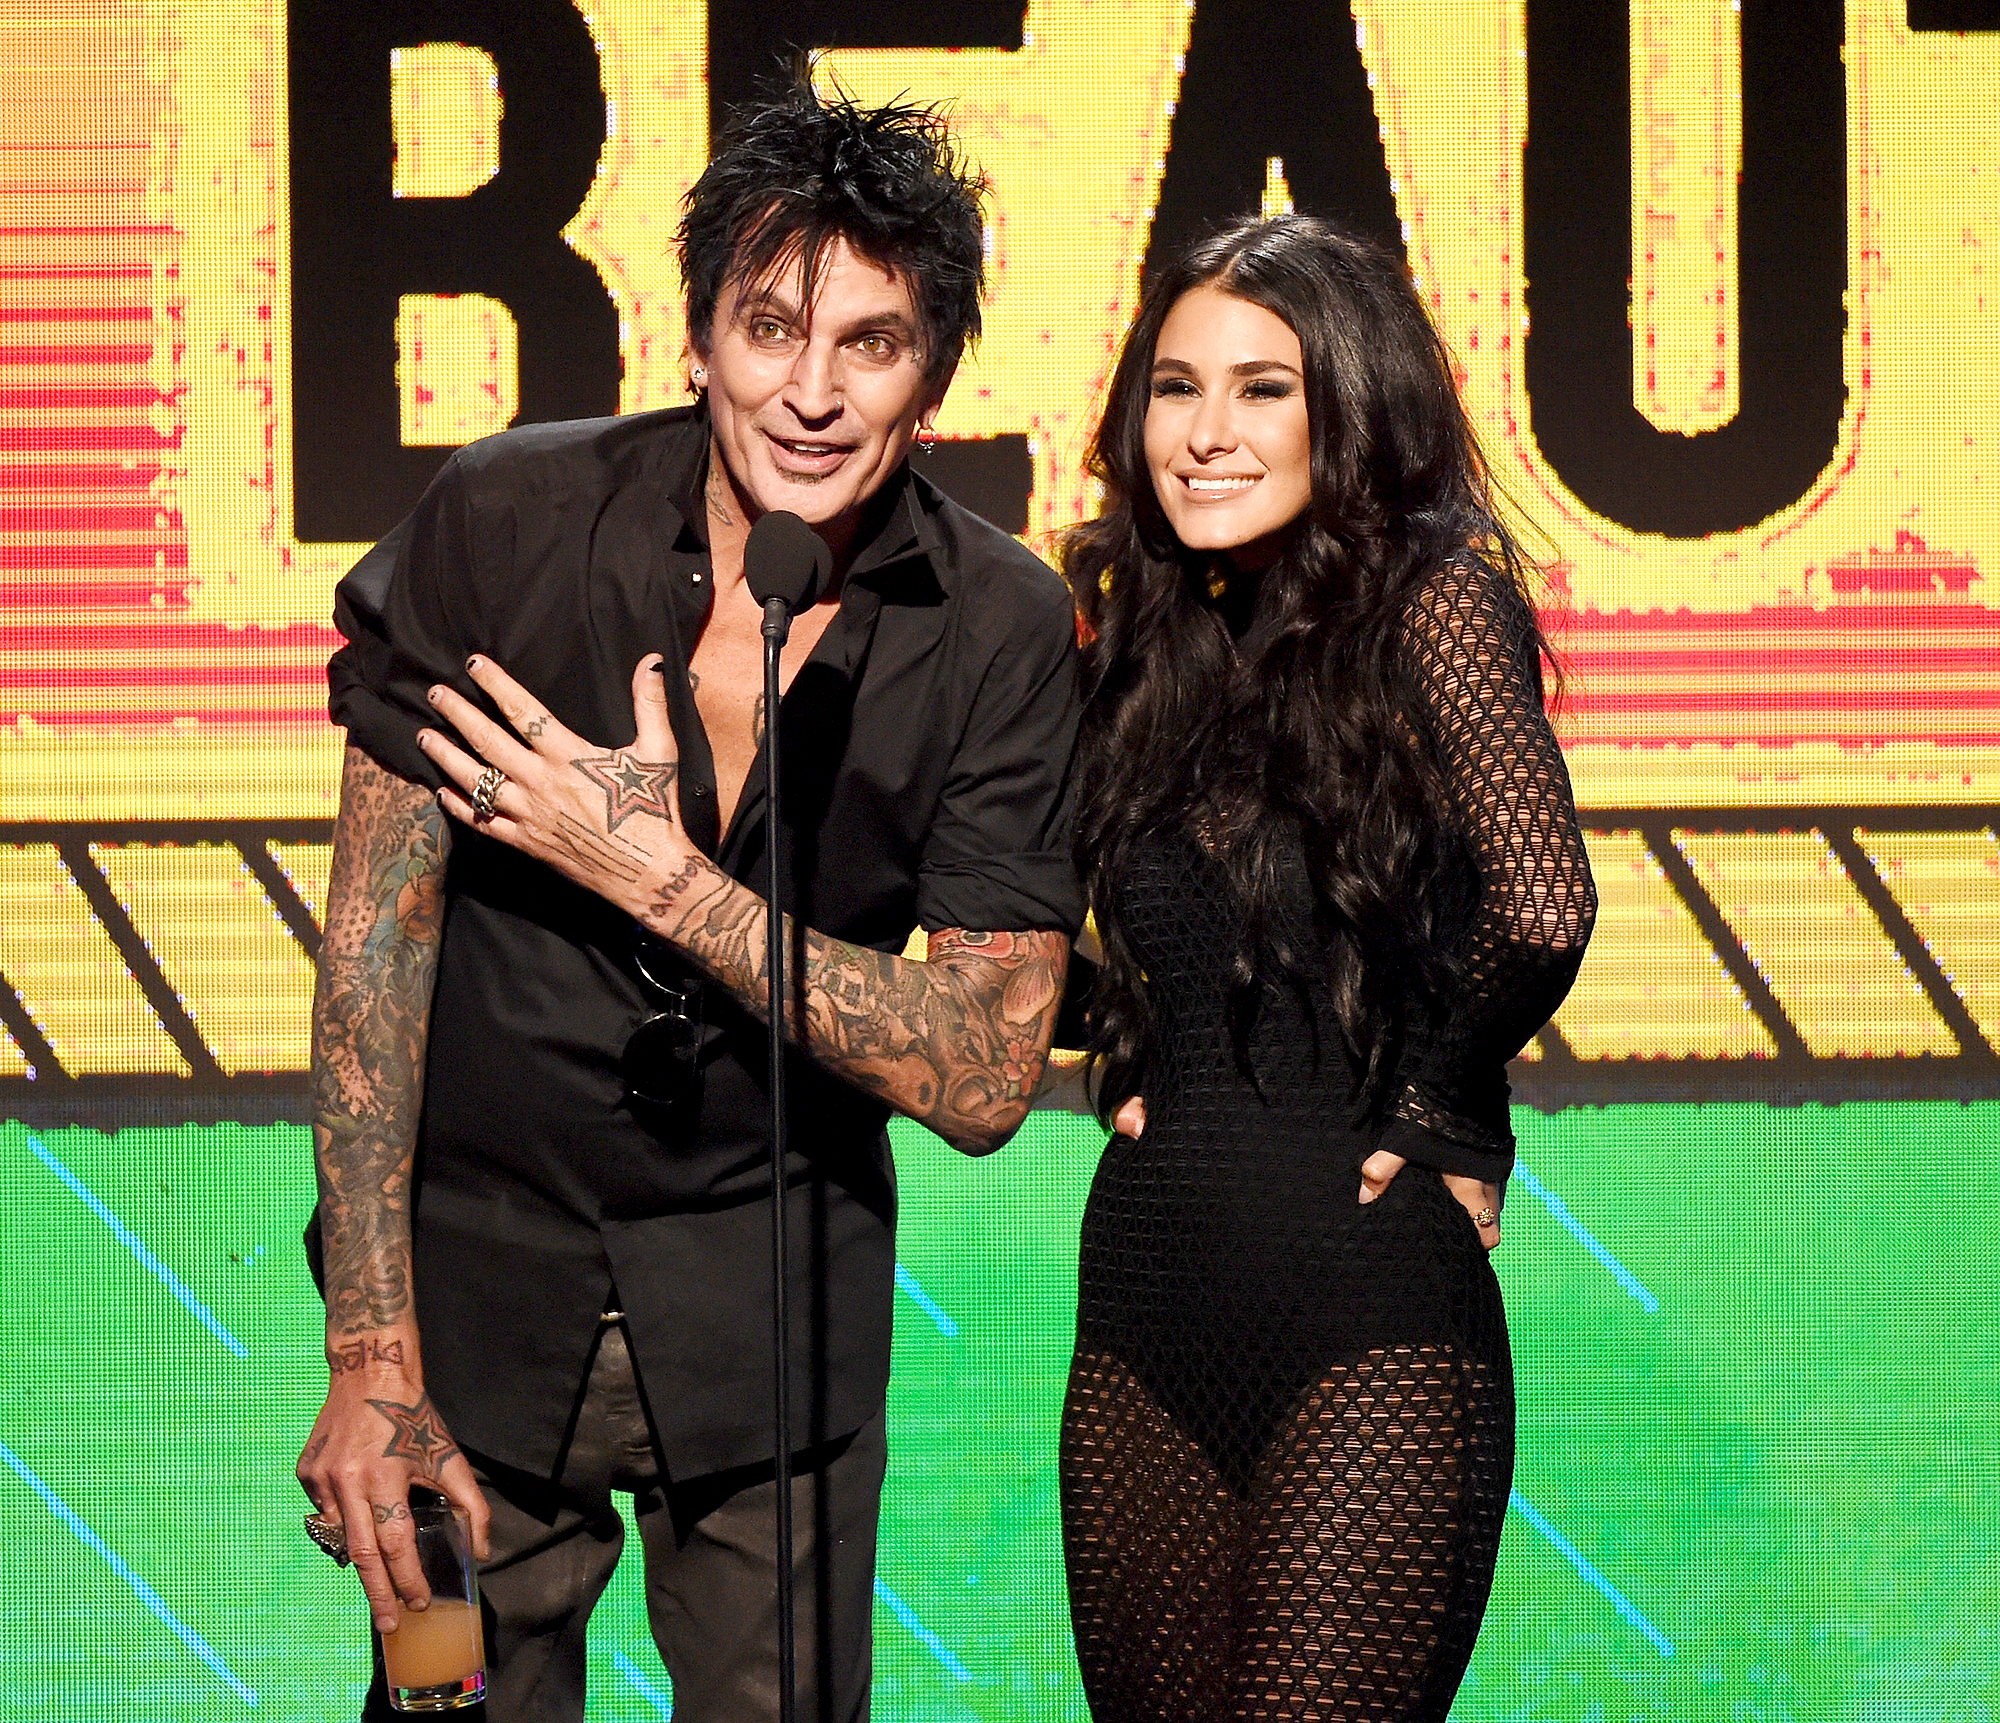 Tommy Lee and Brittany Furlan: A Timeline of Their Relationship